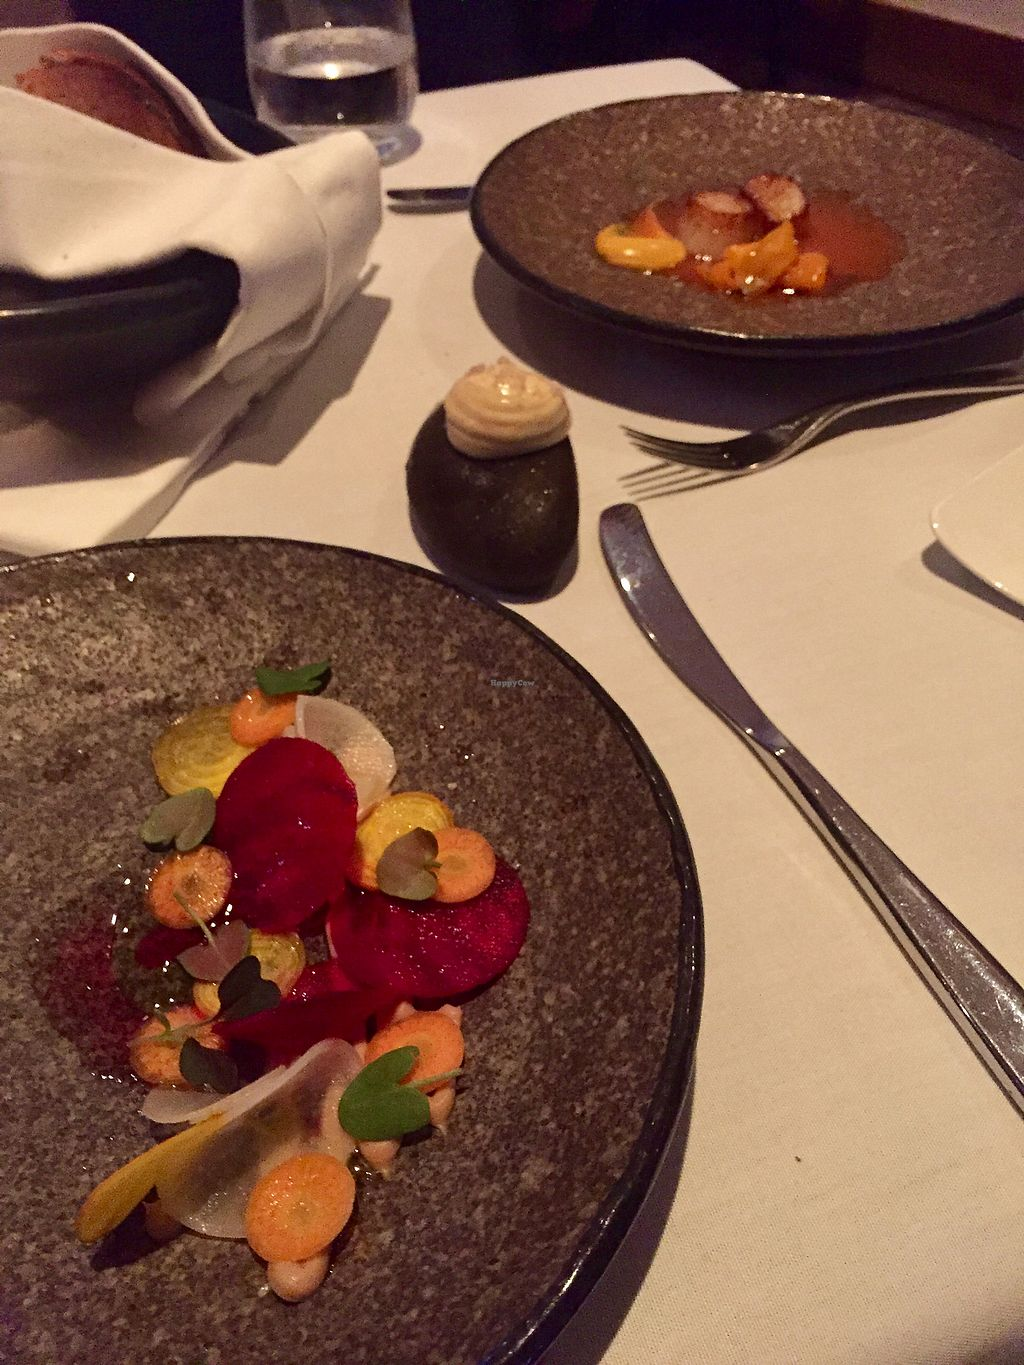 """Photo of Urbane Restaurant  by <a href=""""/members/profile/mamm"""">mamm</a> <br/>Root vegetables  <br/> September 30, 2017  - <a href='/contact/abuse/image/45674/310002'>Report</a>"""